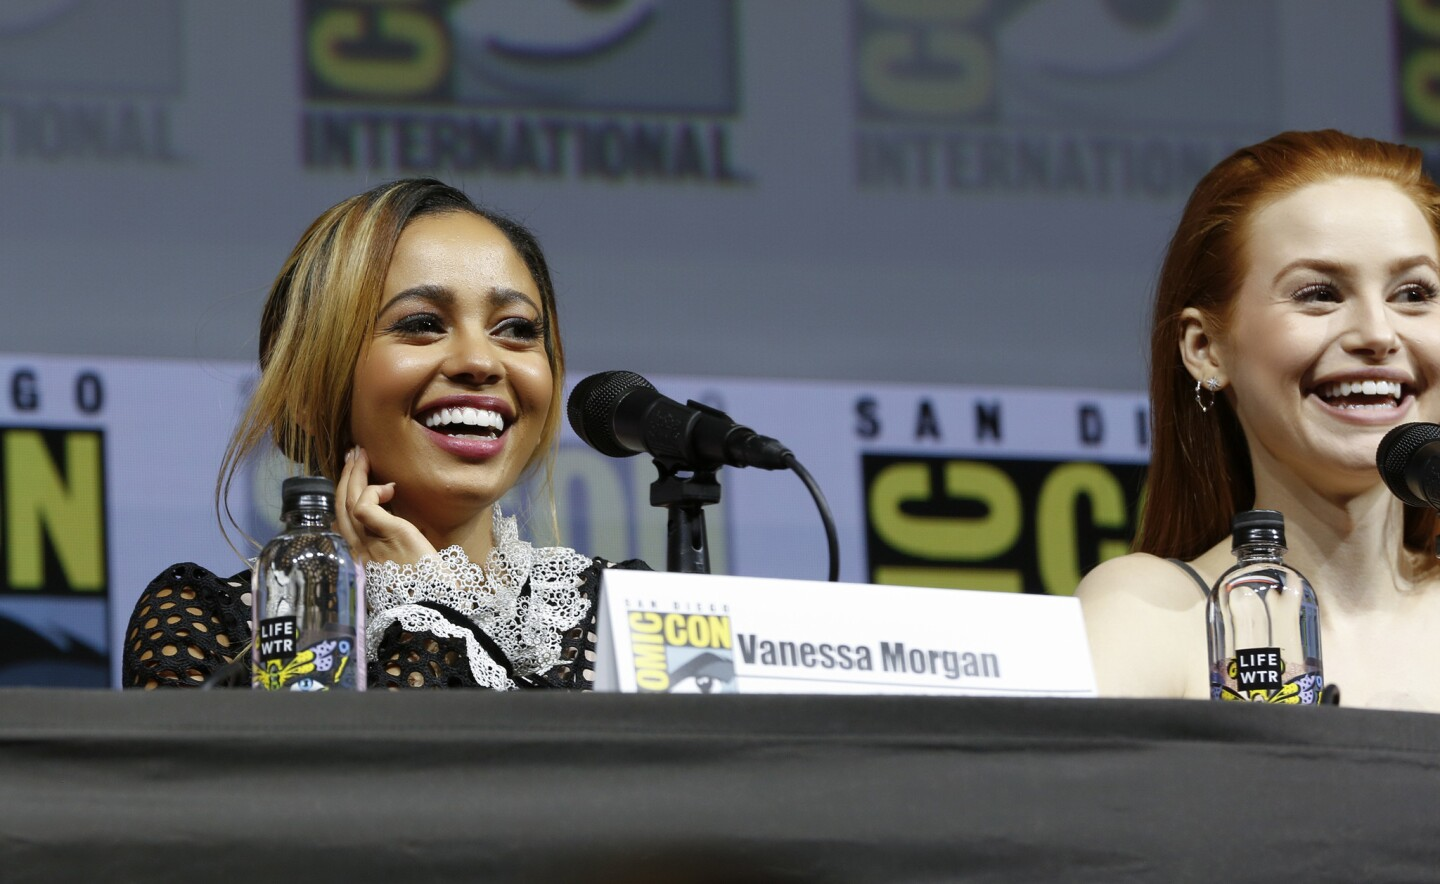 Vanessa Morgan and Madelaine Petsch from the television show Riverdale, at Comic-Con 2018 in San Diego.